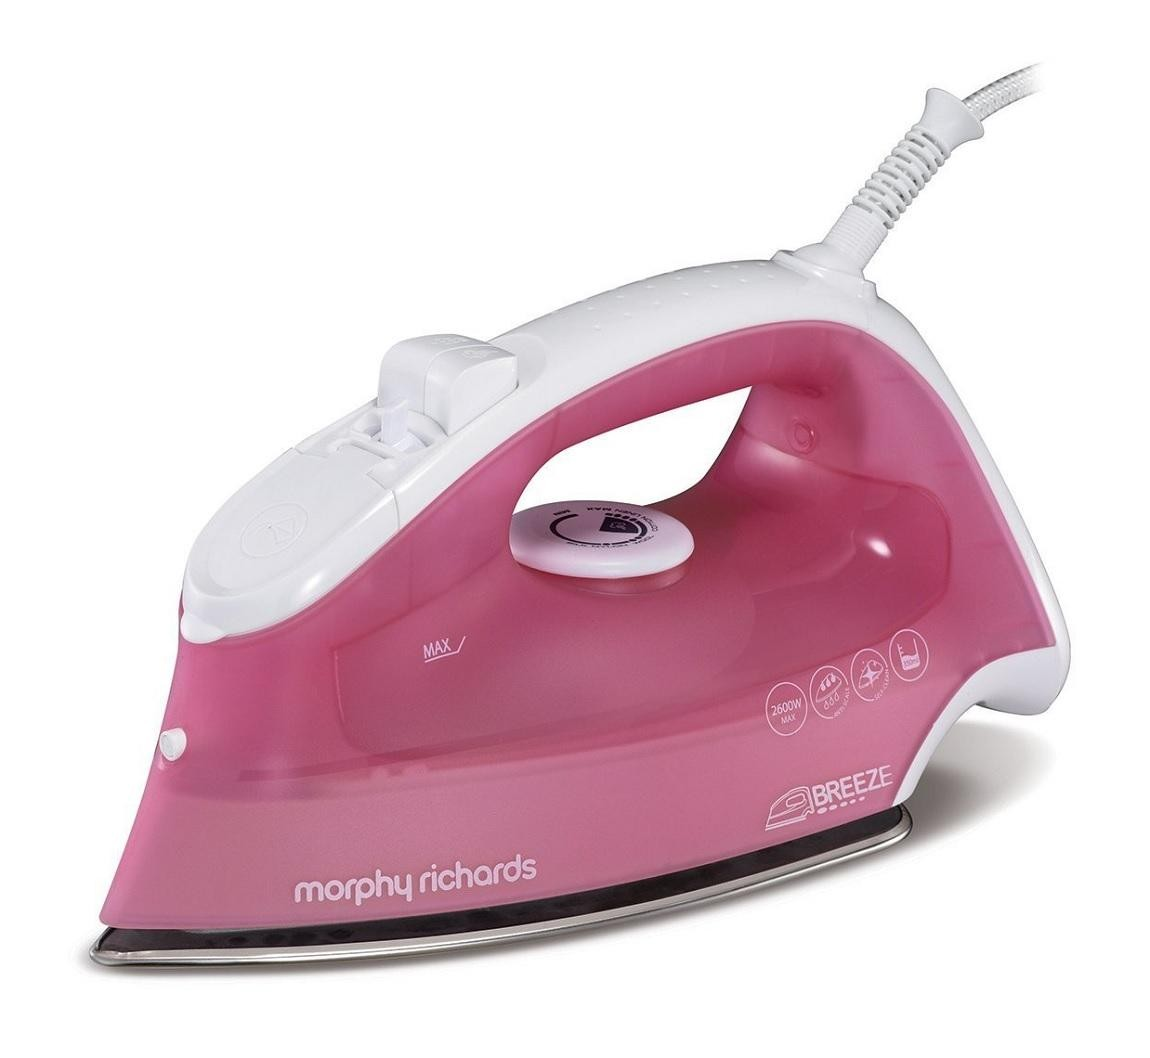 morphy-richards-300250.jpg